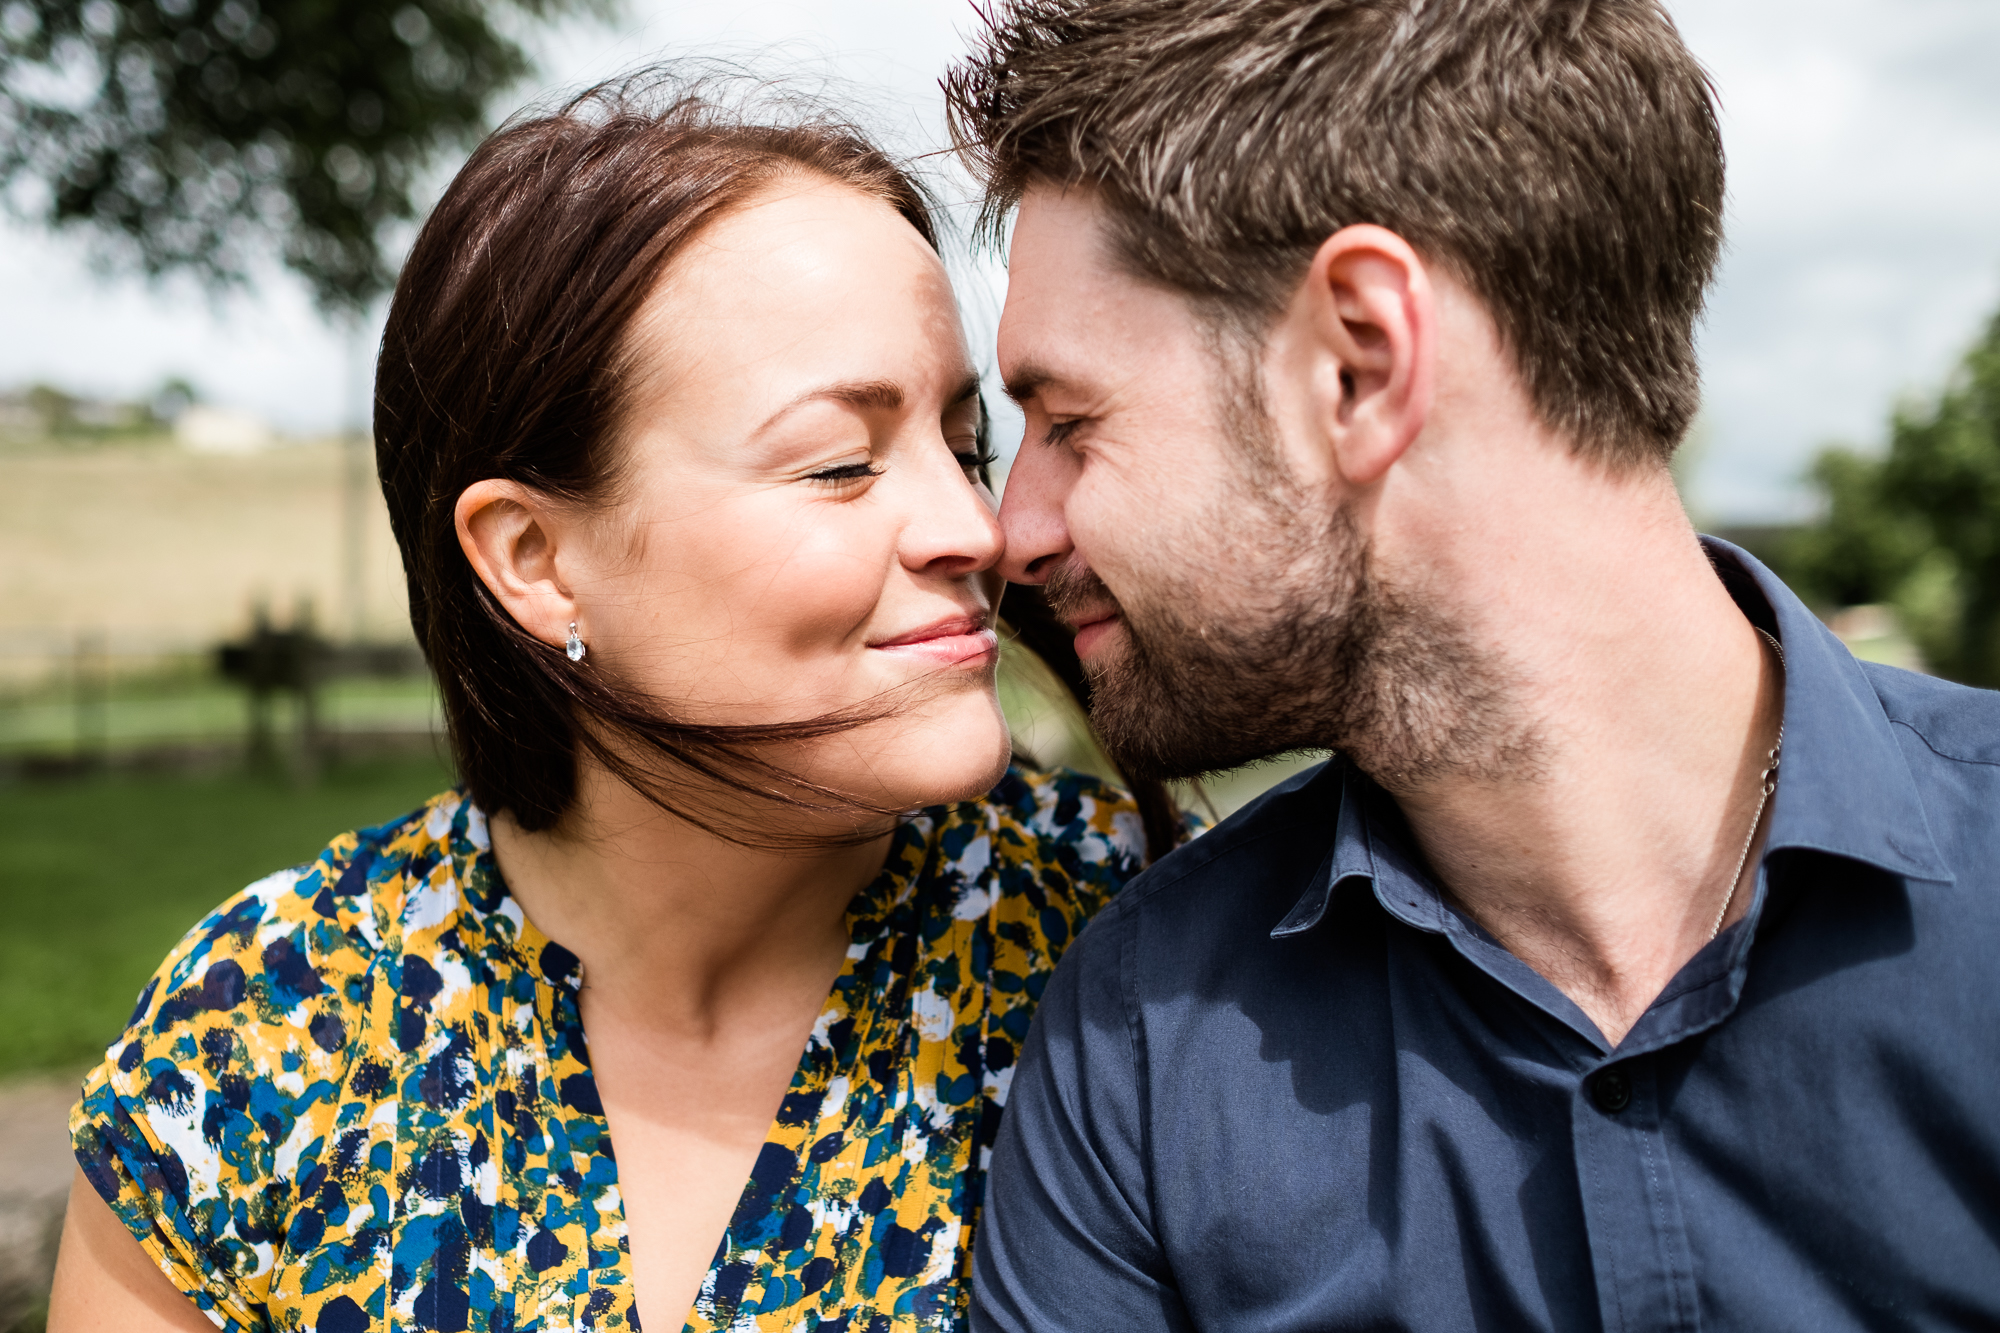 Pre-Wedding Session Engagement Photos Couple Shoot English countryside Canal - Jenny Harper Photography-9.jpg